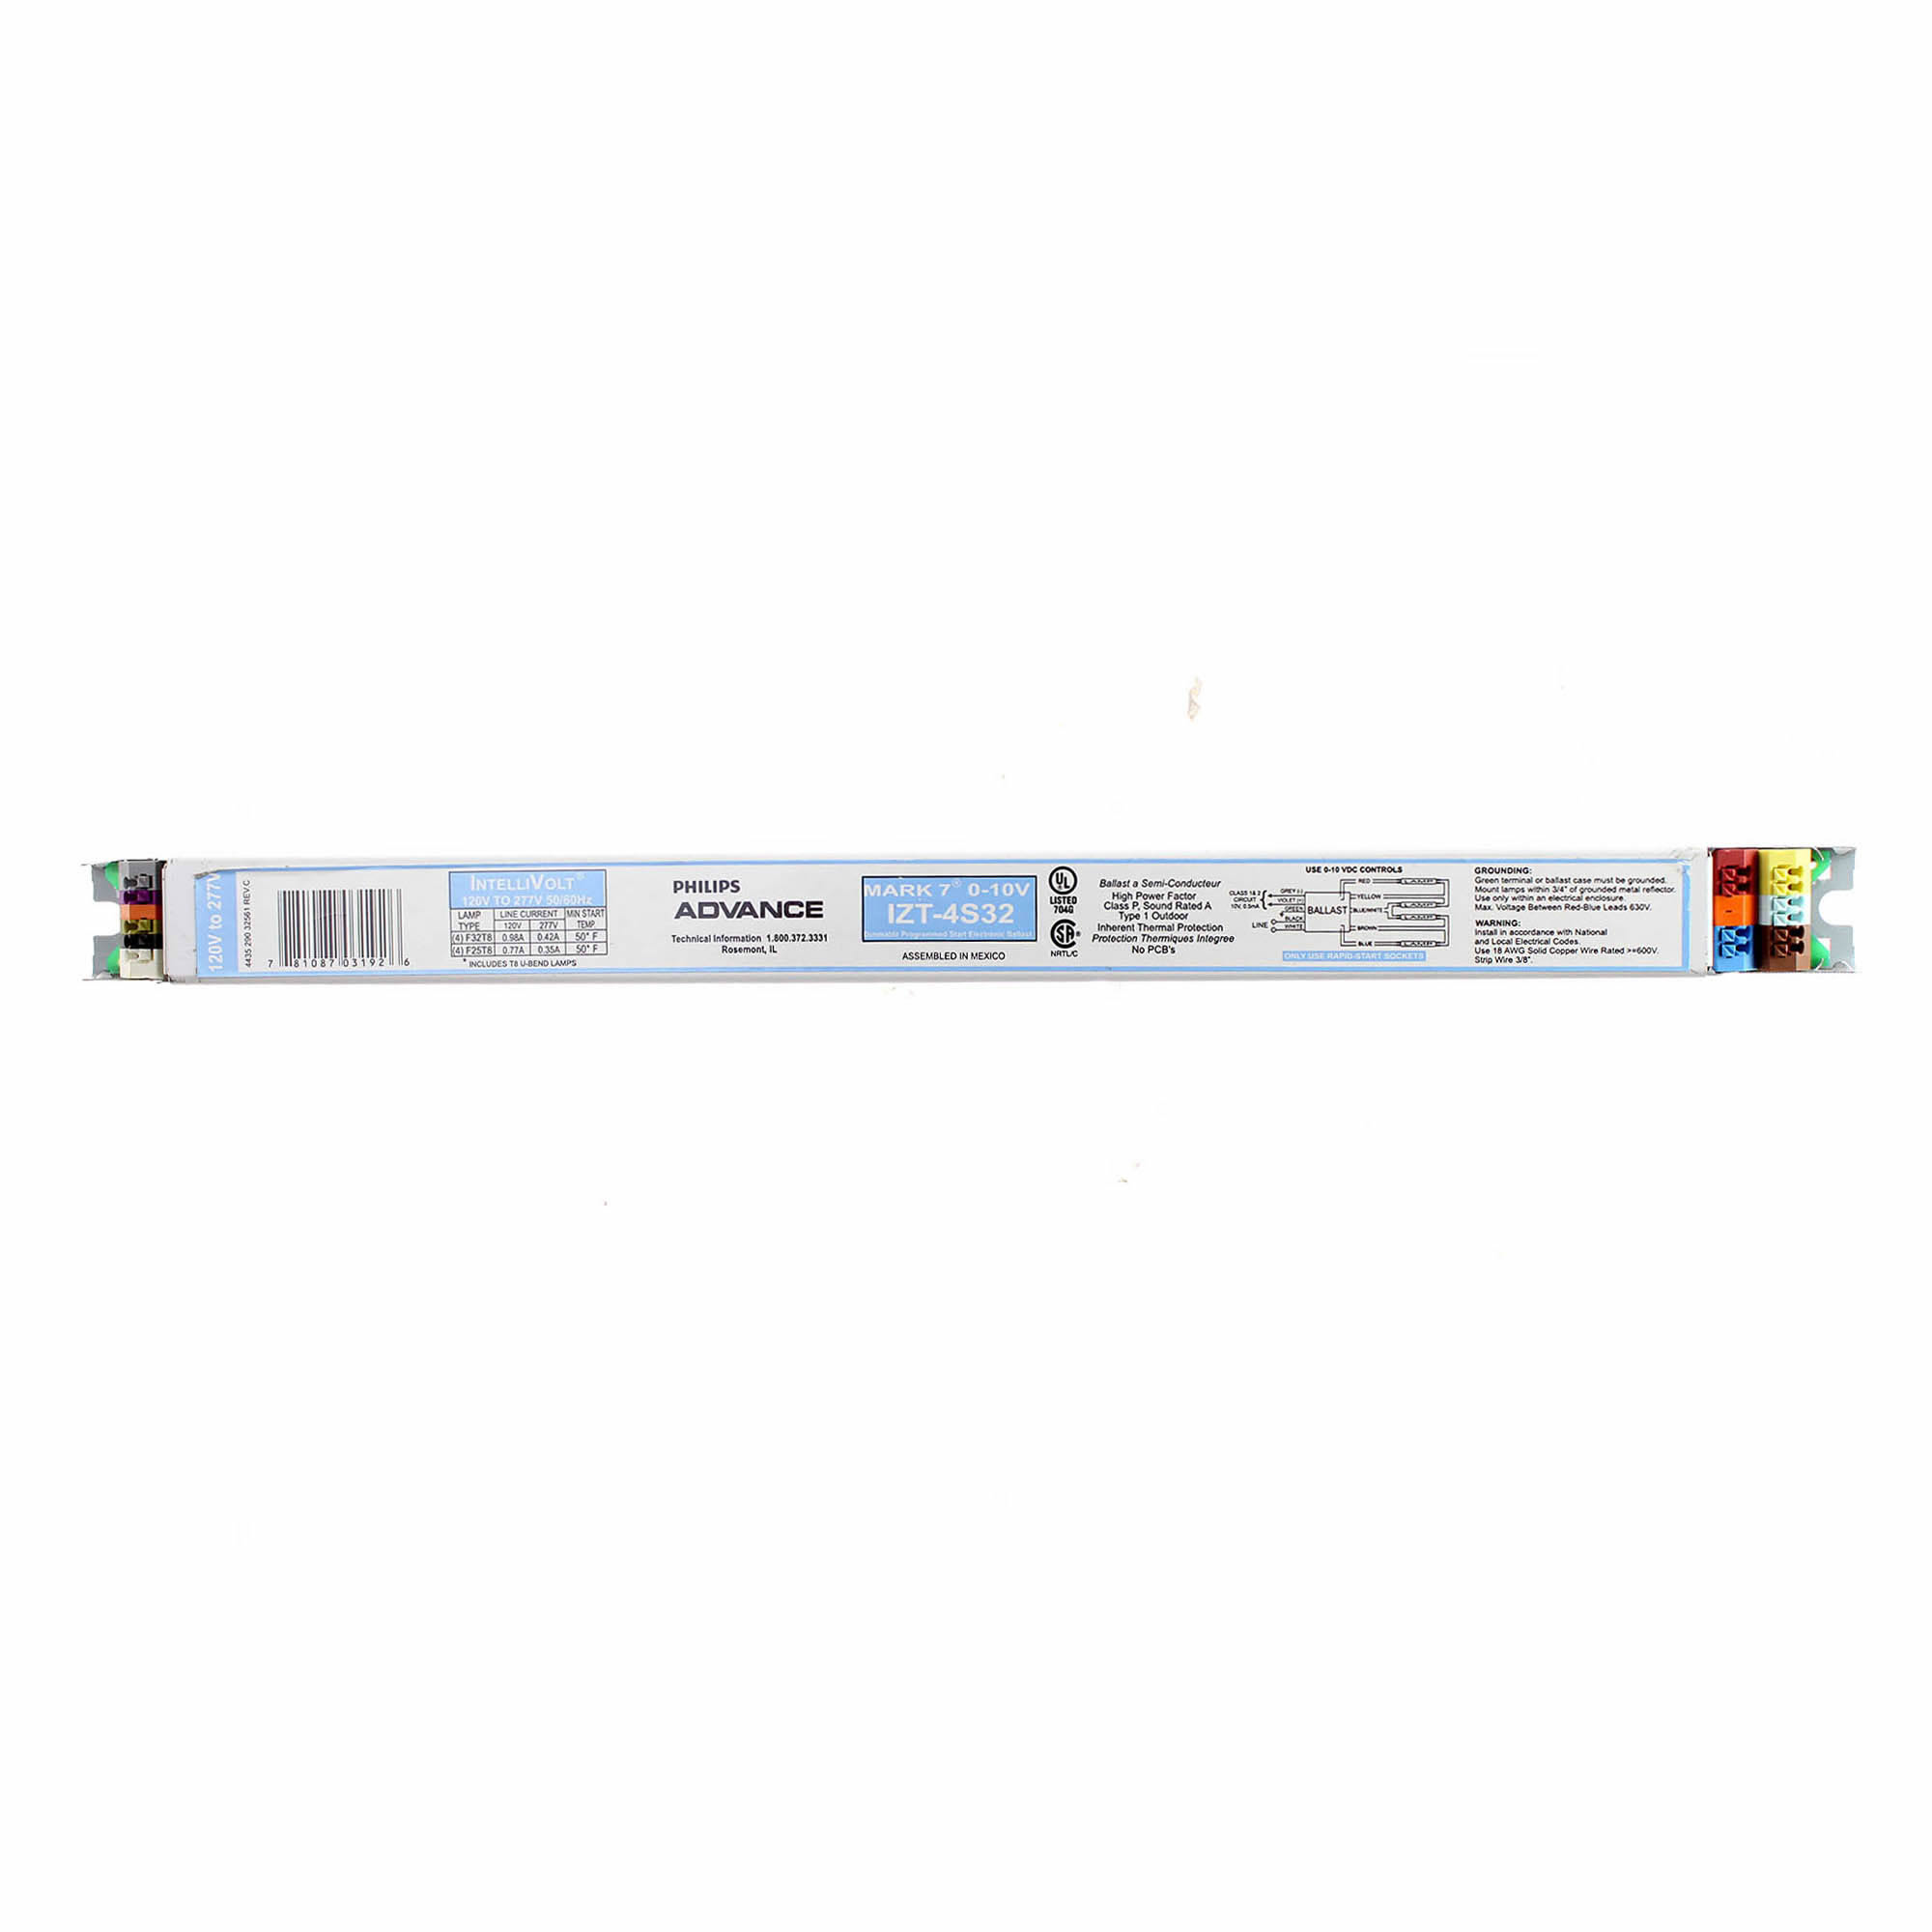 Advance Izt 4s32 Mark 7 Dimmable Electronic Ballast F32t8